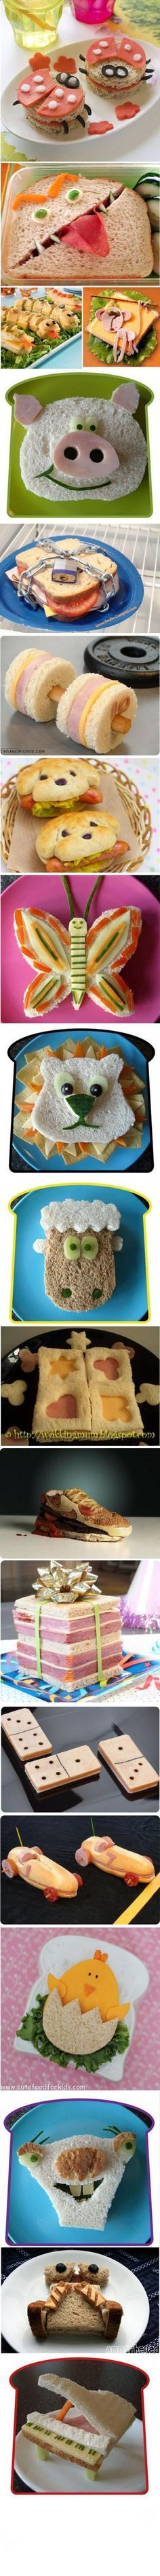 Nice ideas to make your kid's lunch a highlight of the day / Schöne Ideen, wie man das Mittag essen Cute Snacks, Snacks Für Party, Cute Food, Good Food, Toddler Meals, Kids Meals, Sandwich Original, Childrens Meals, Food Decoration